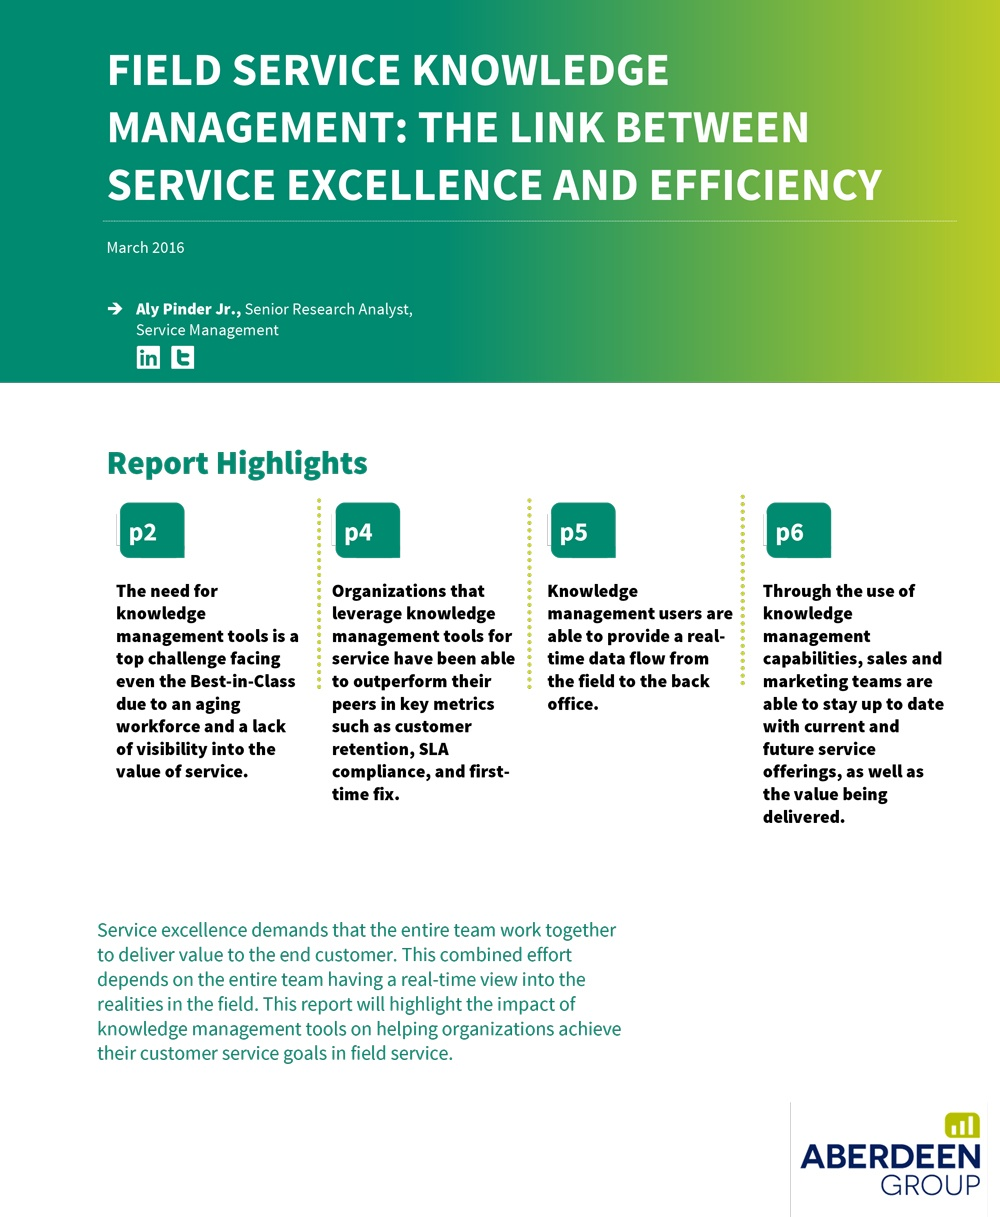 Field Service Knowledge Management: The Link between Service Excellence and Efficiency